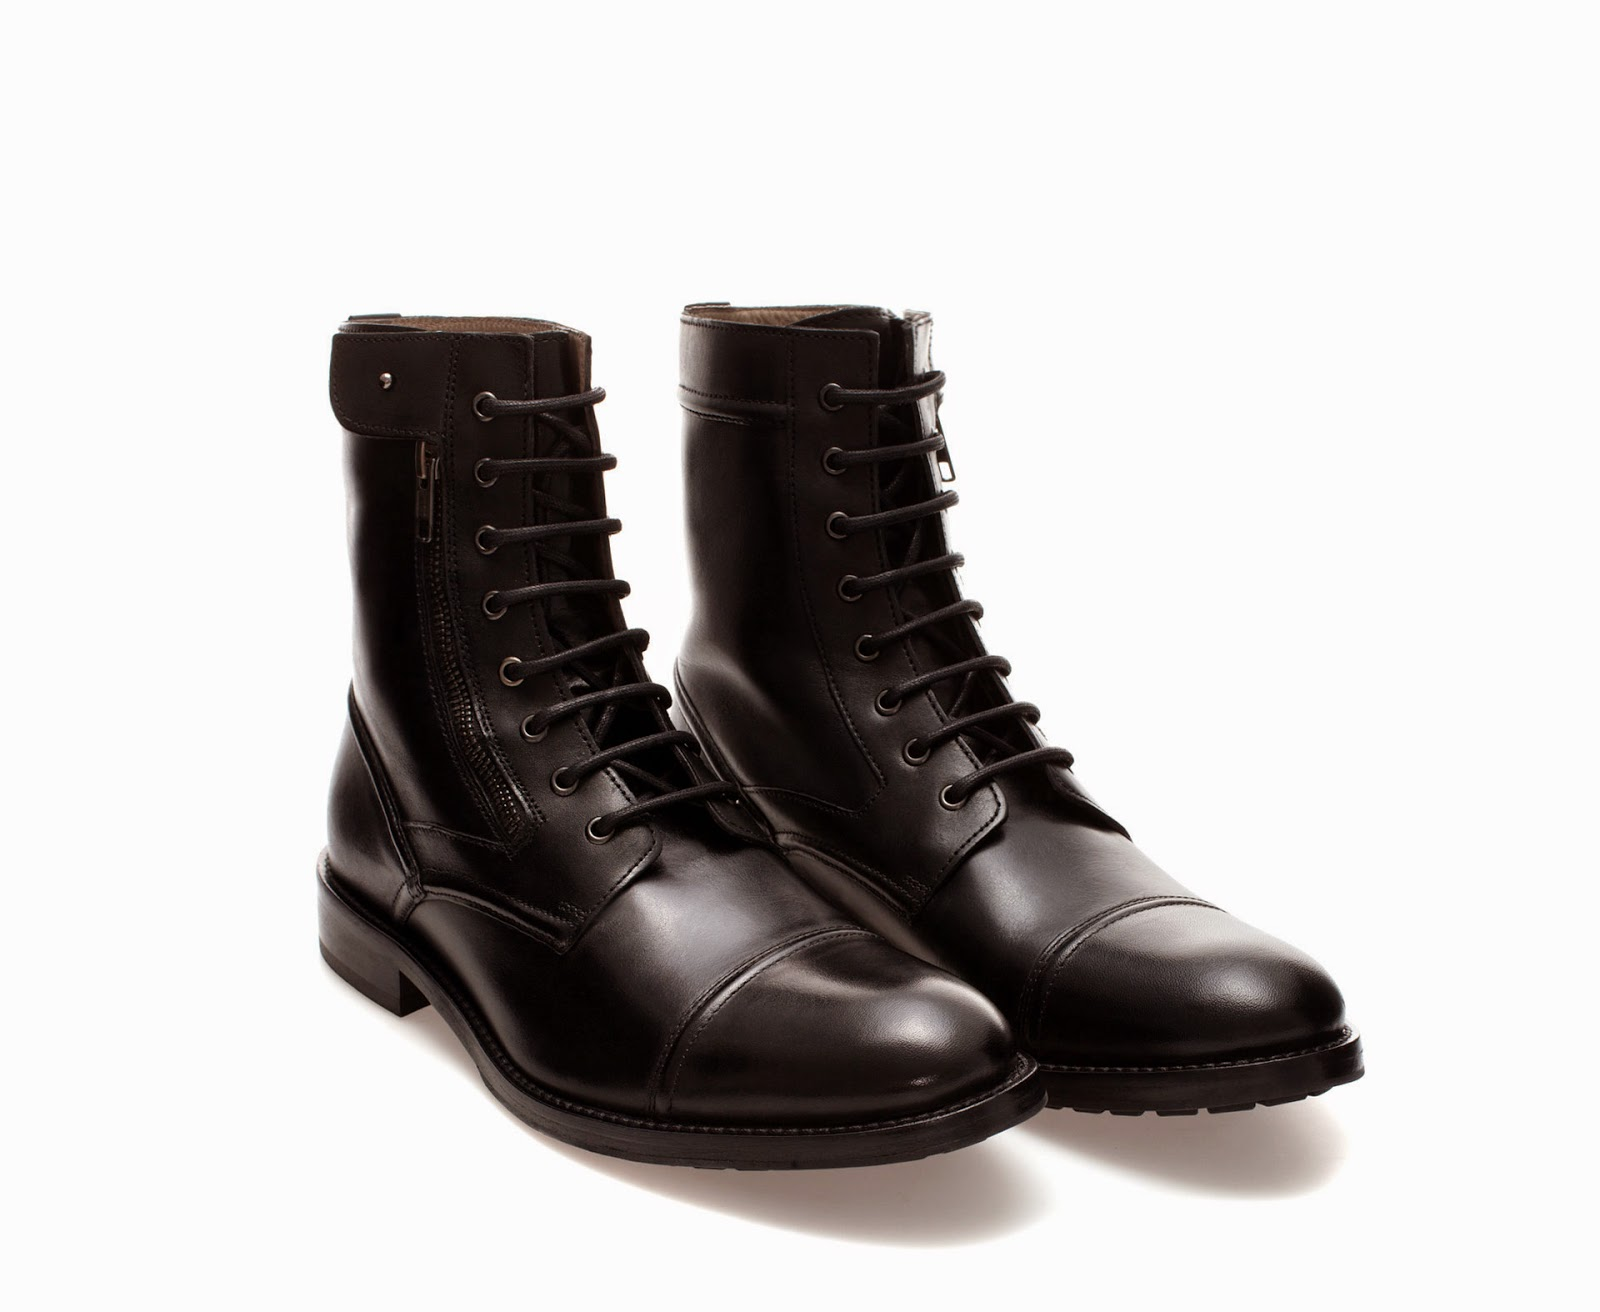 Stylish mens combat boots advise dress in spring in 2019